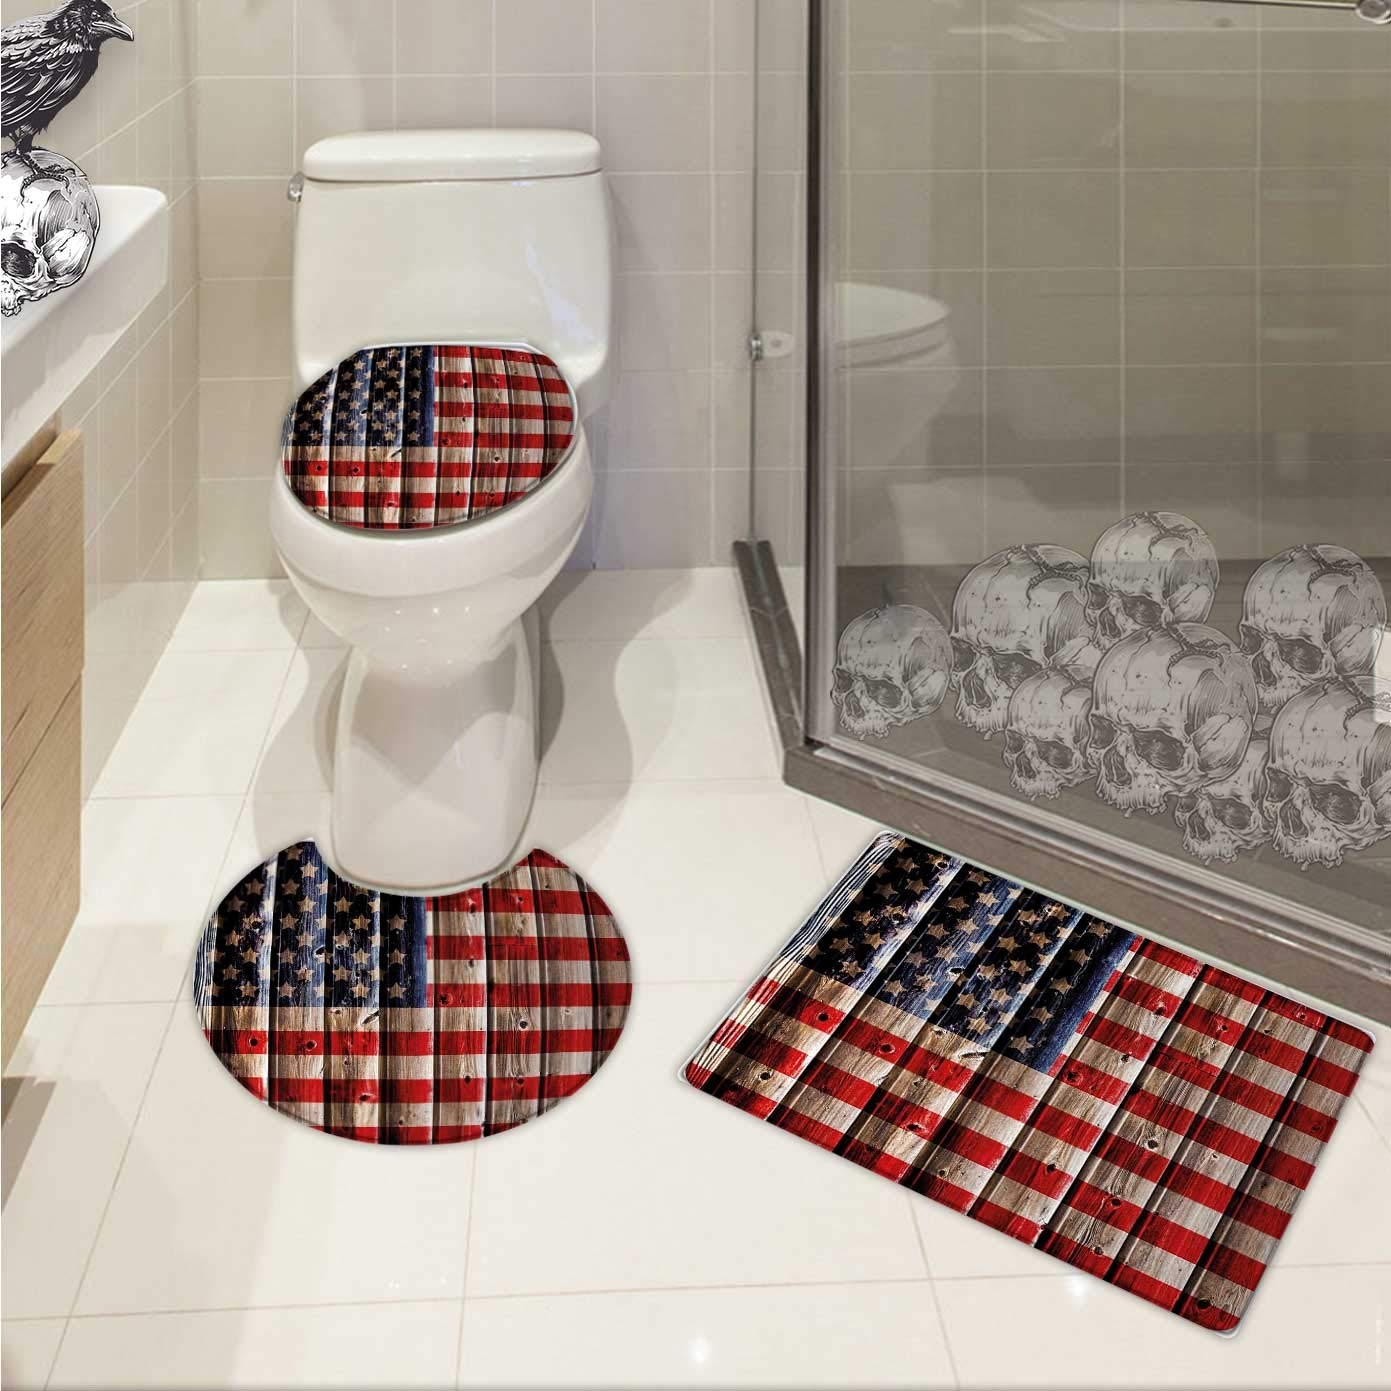 29250dfd0446 Carl Morris 4th of July toilet rug and mat set Rustic Backdrop with  American Flag Design Wooden Boards Design 3D digital printing Rug Set White  Navy ...